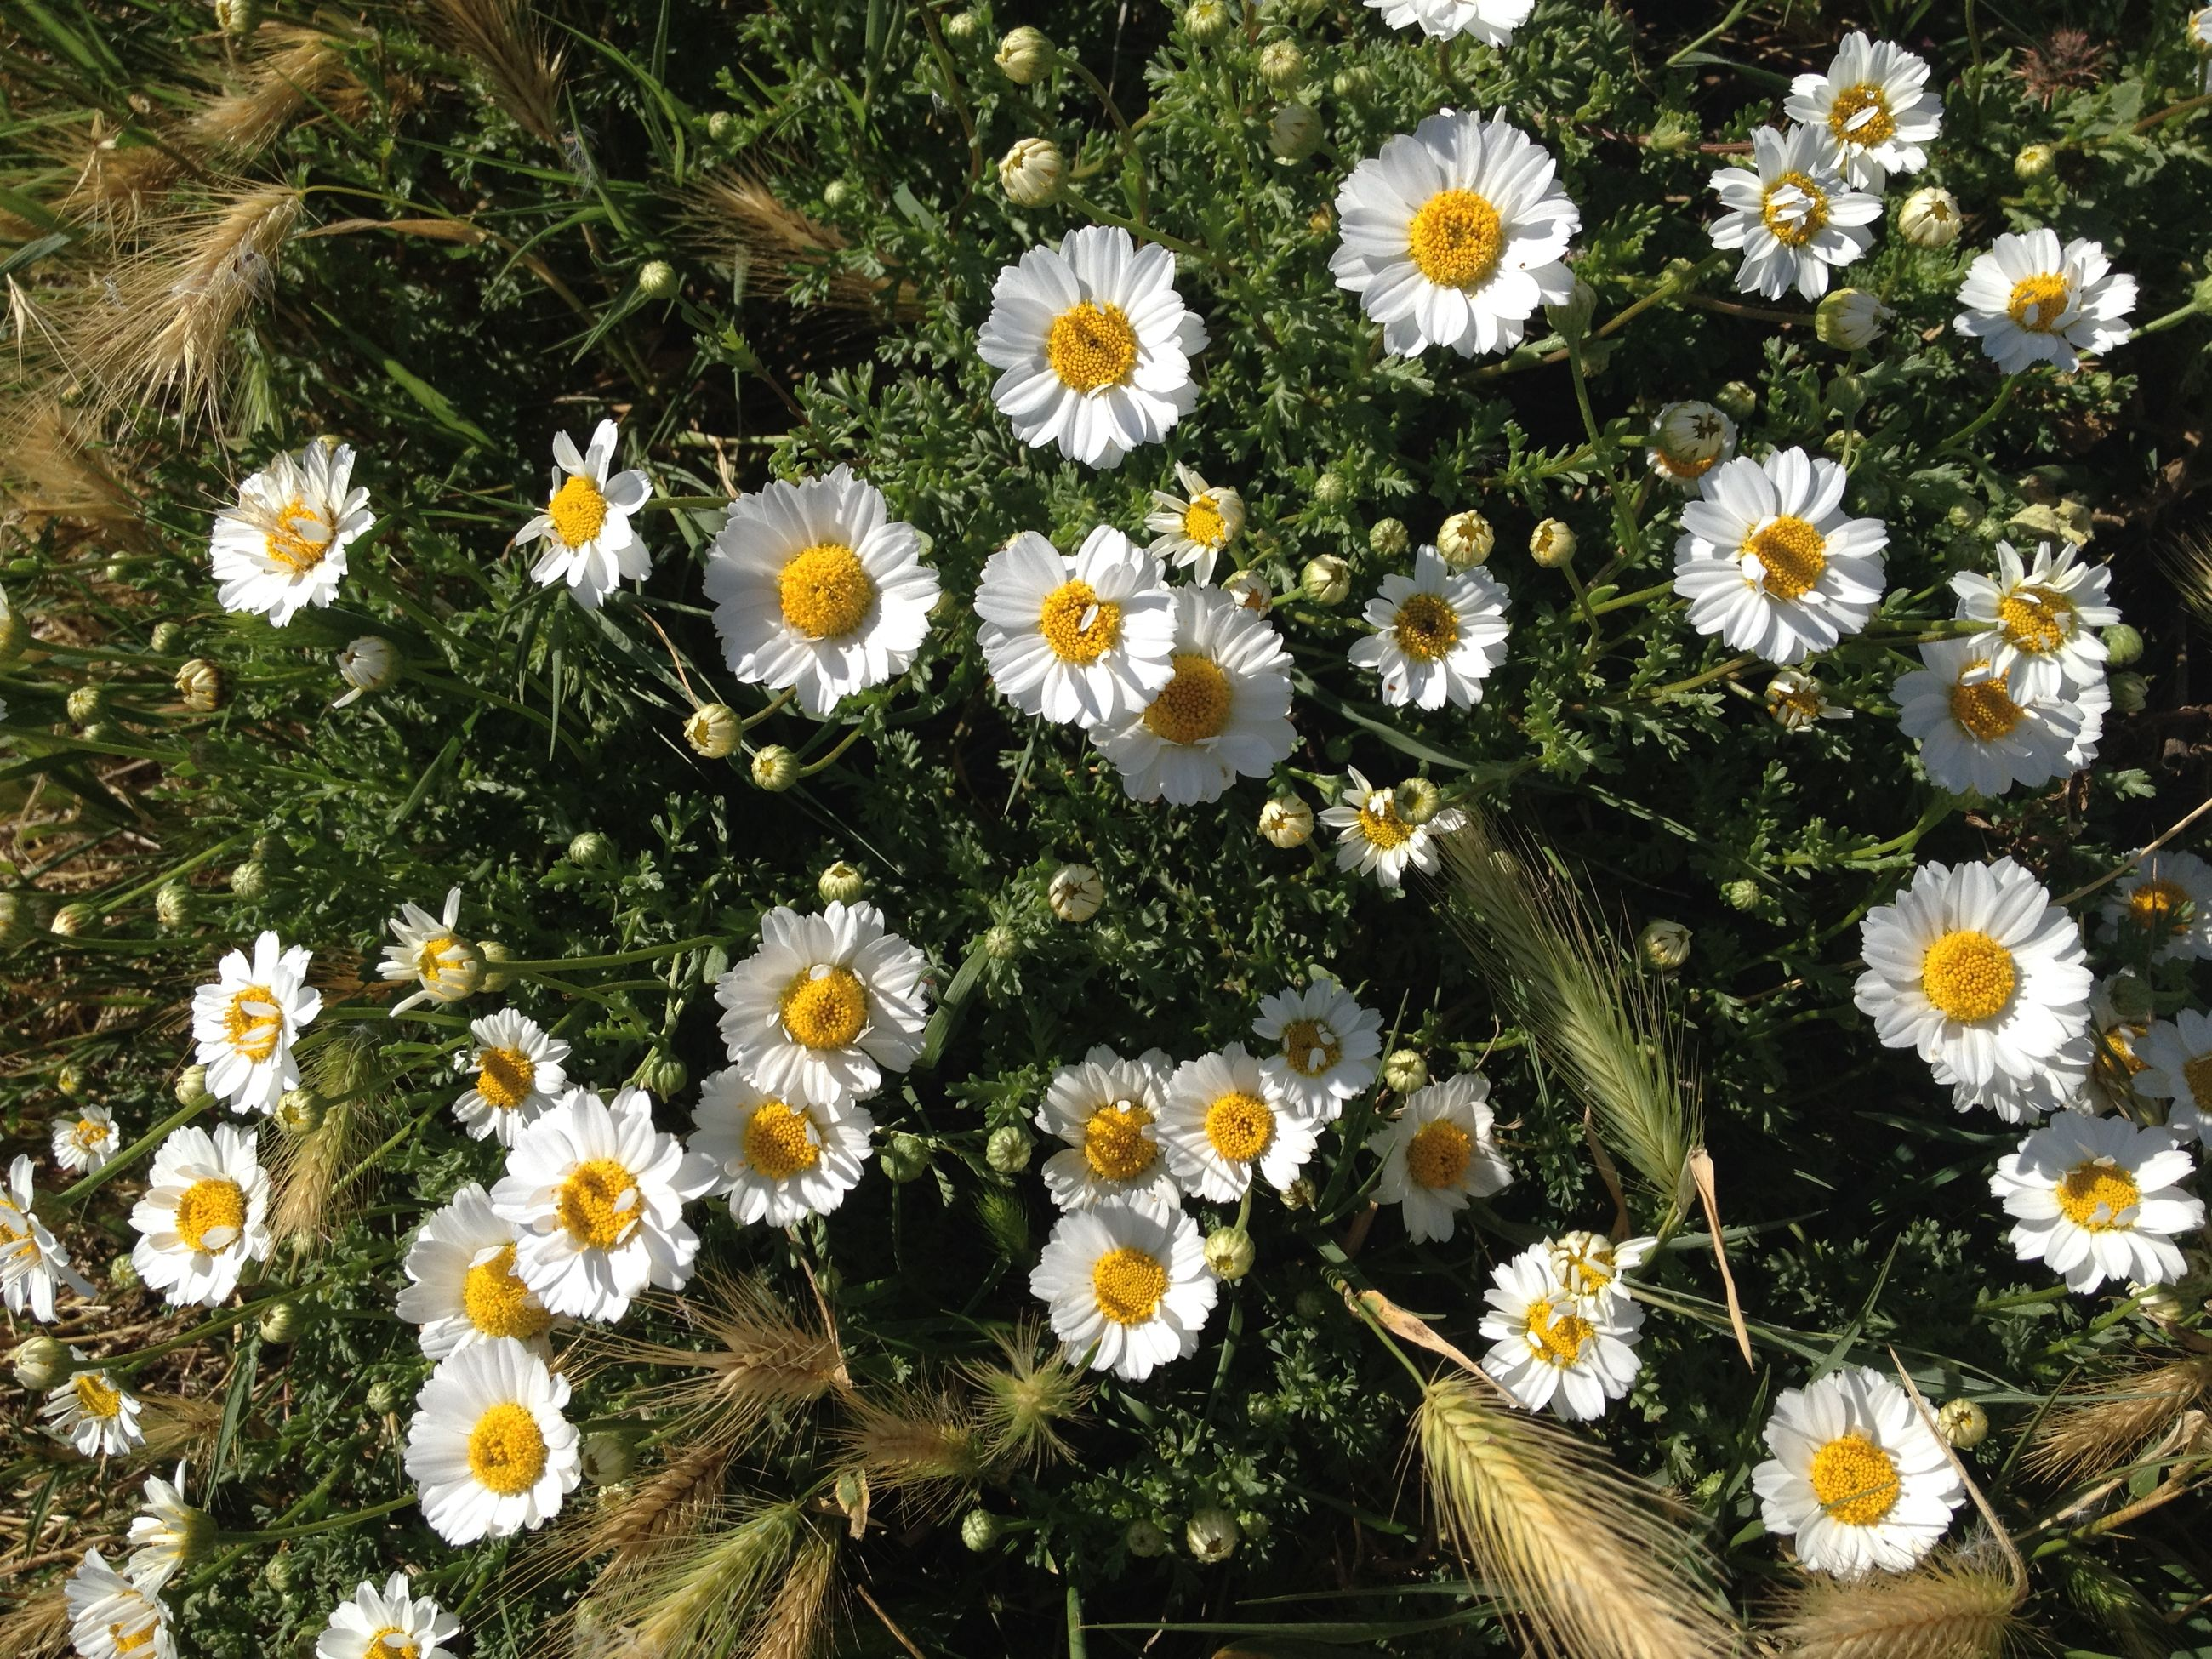 flower, freshness, daisy, fragility, petal, growth, white color, beauty in nature, flower head, blooming, high angle view, nature, yellow, plant, field, in bloom, pollen, blossom, abundance, botany